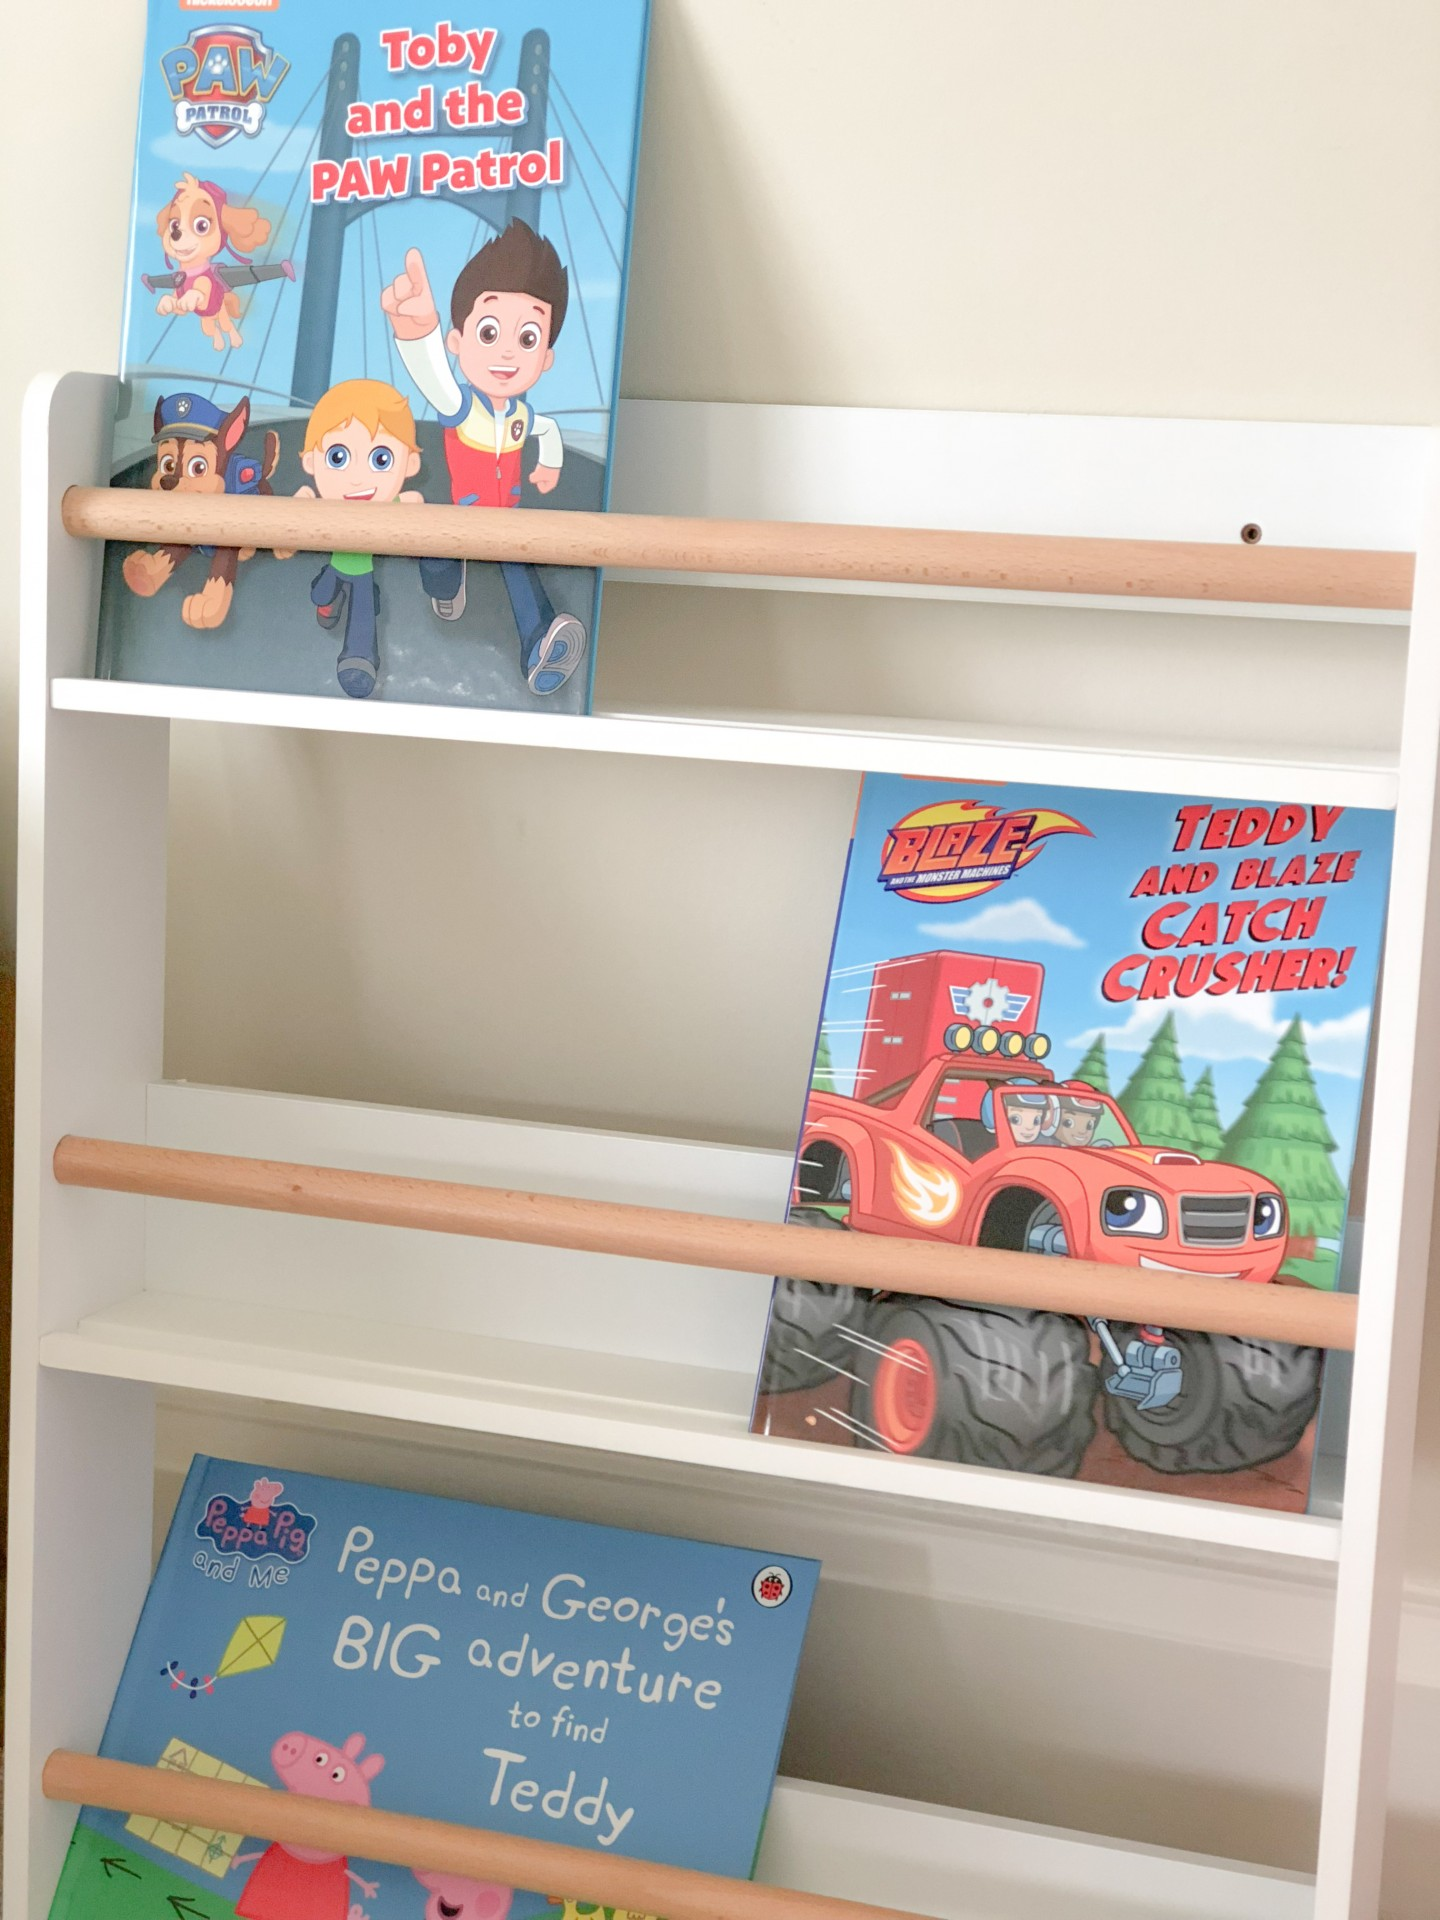 tots and tykes hamper social network solutions explore new brands penwizard customised books for kids